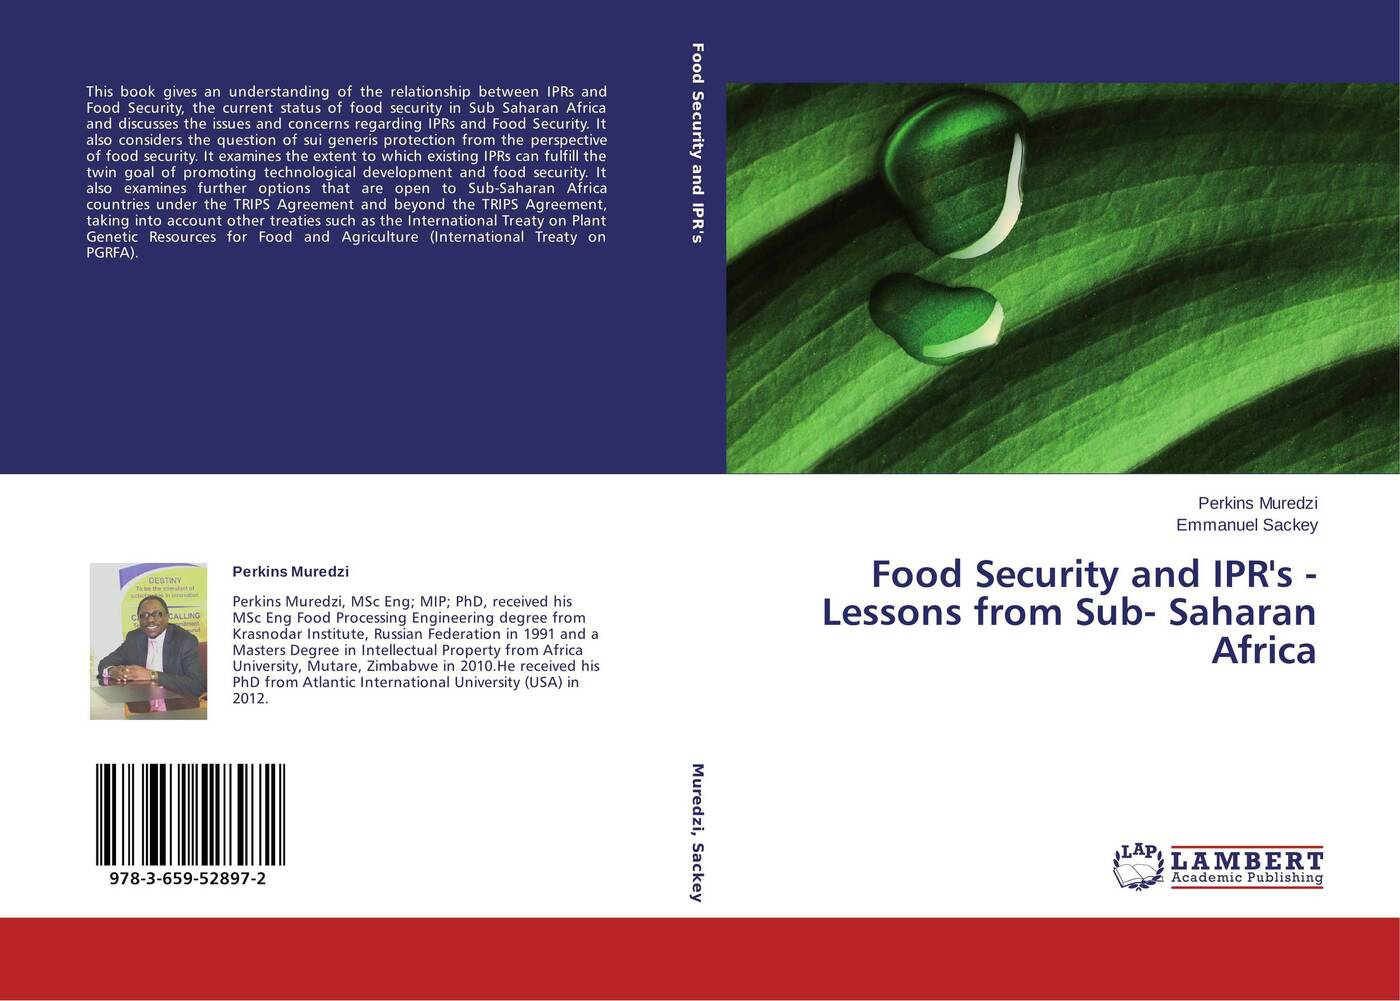 Perkins Muredzi and Emmanuel Sackey Food Security and IPR's - Lessons from Sub- Saharan Africa wayne martindale global food security and supply